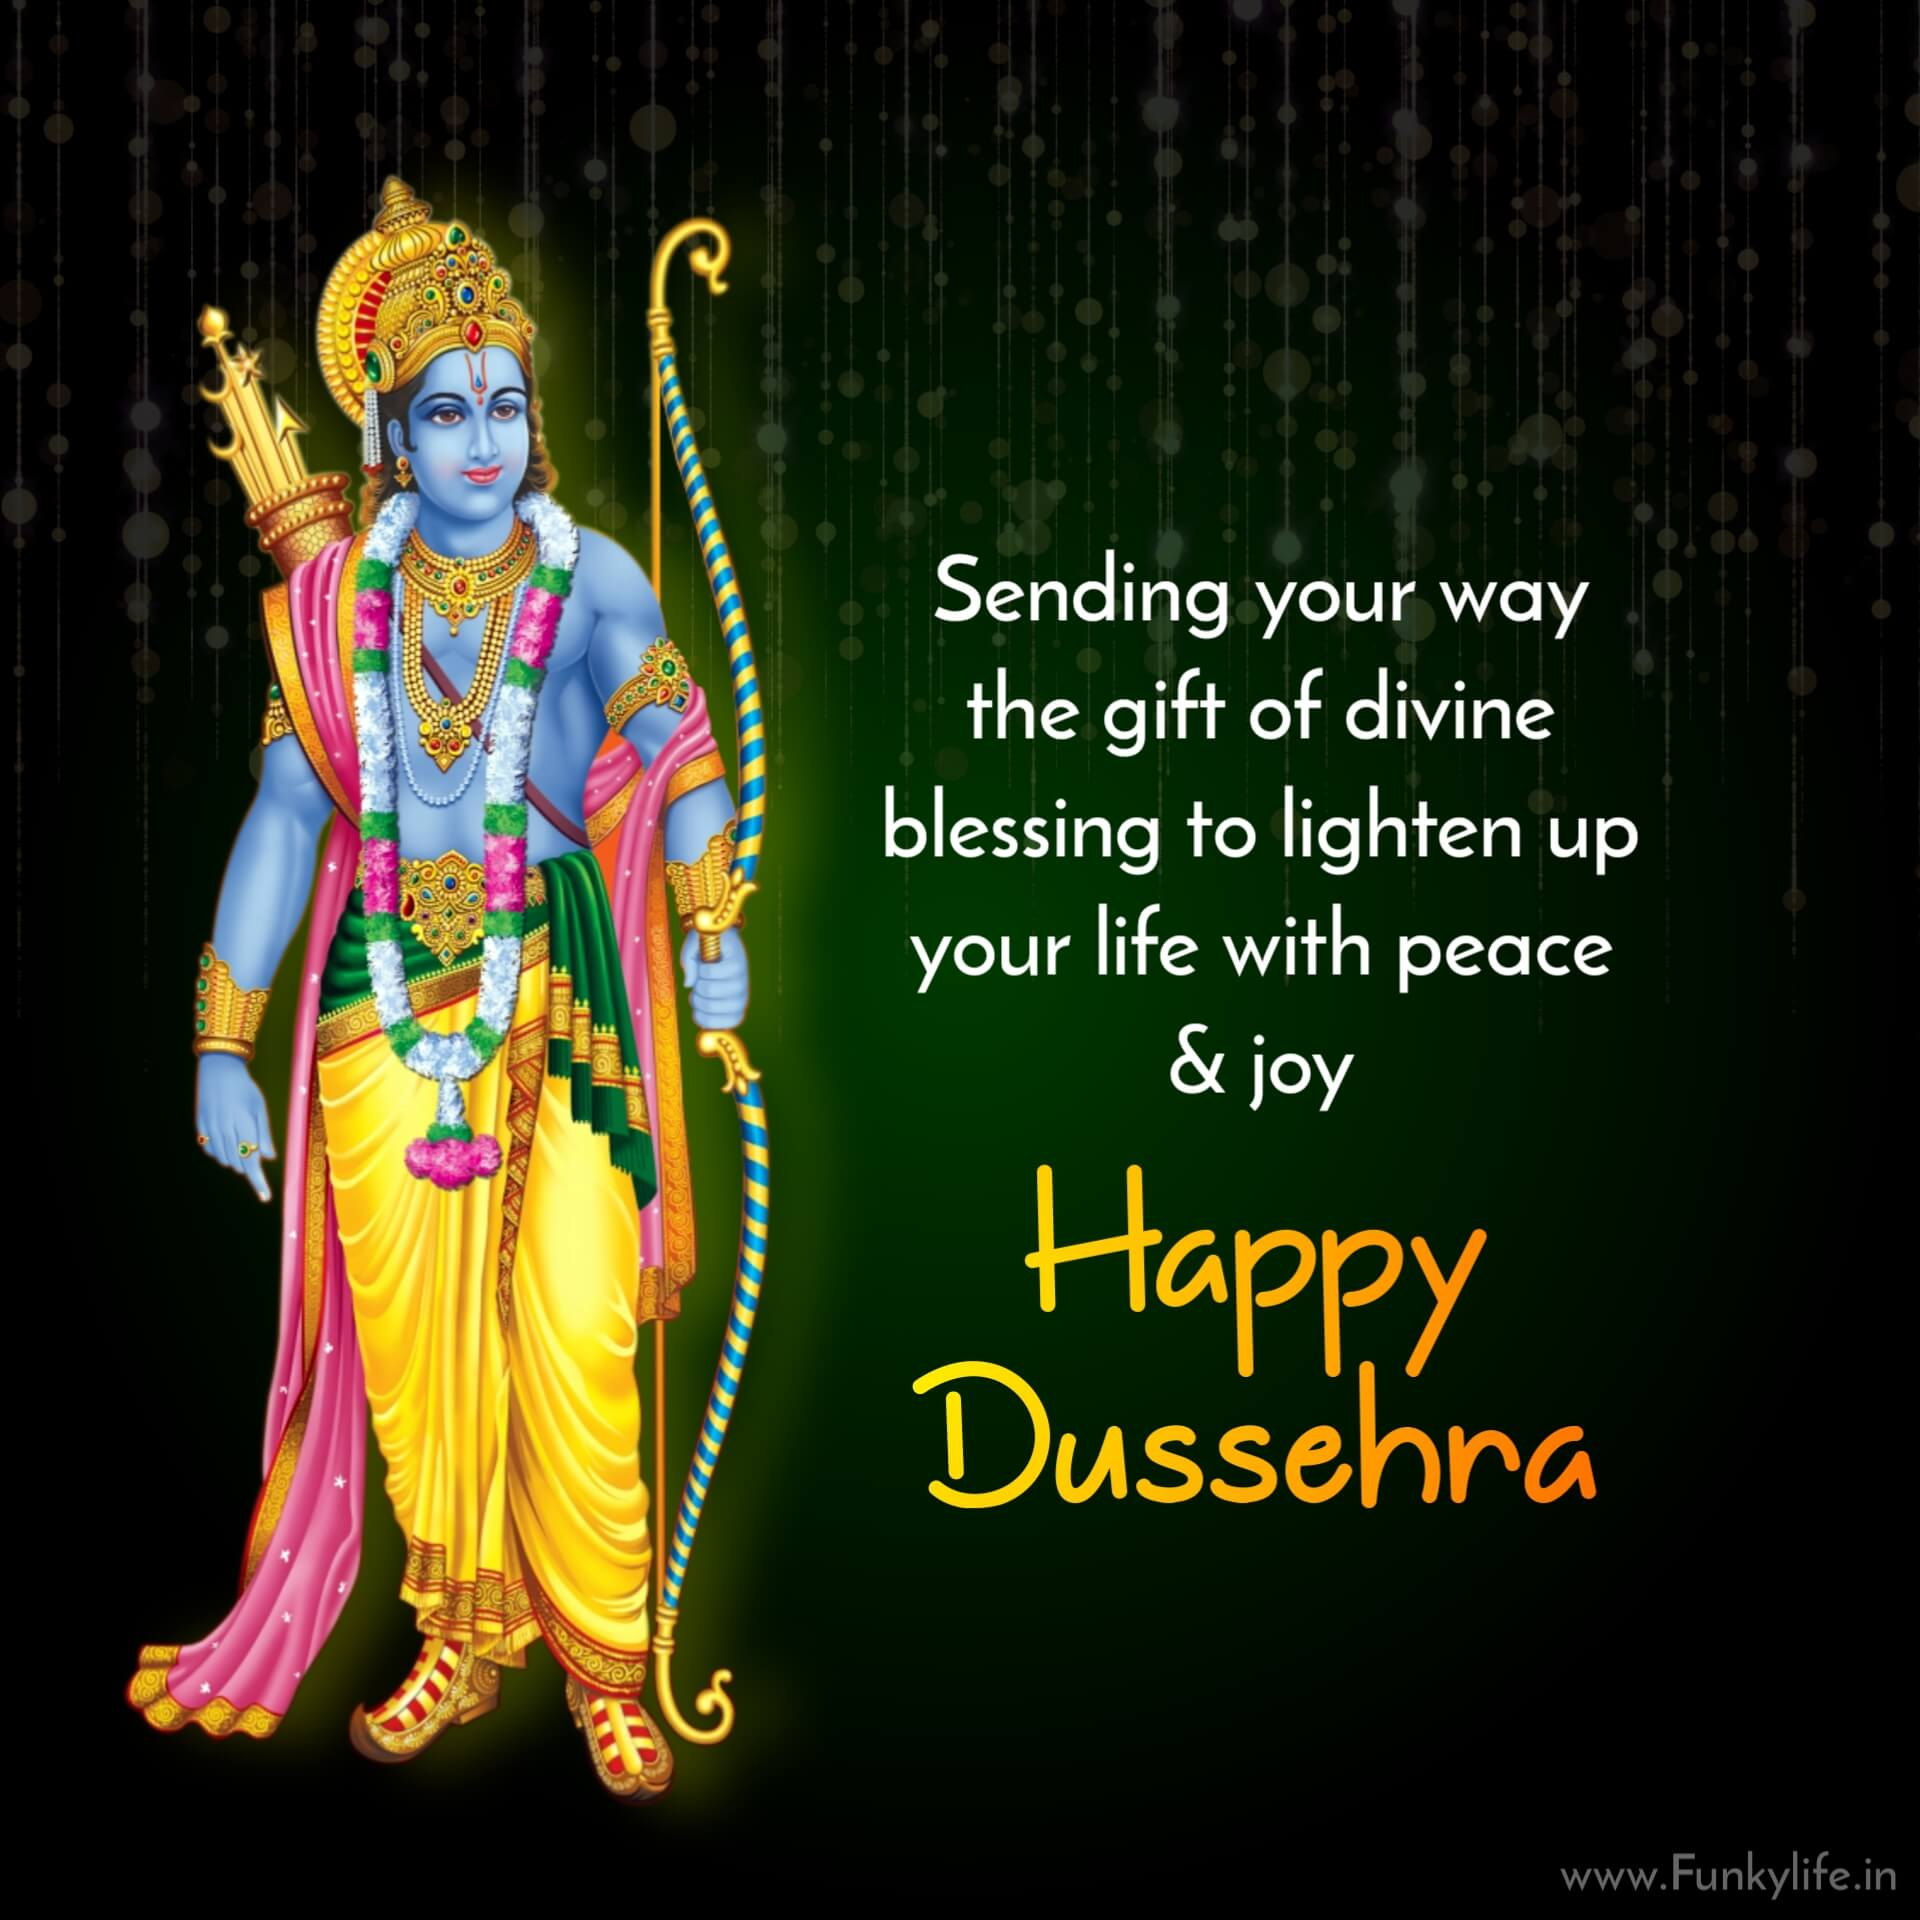 Happy Dussehra wishes blessings Pic